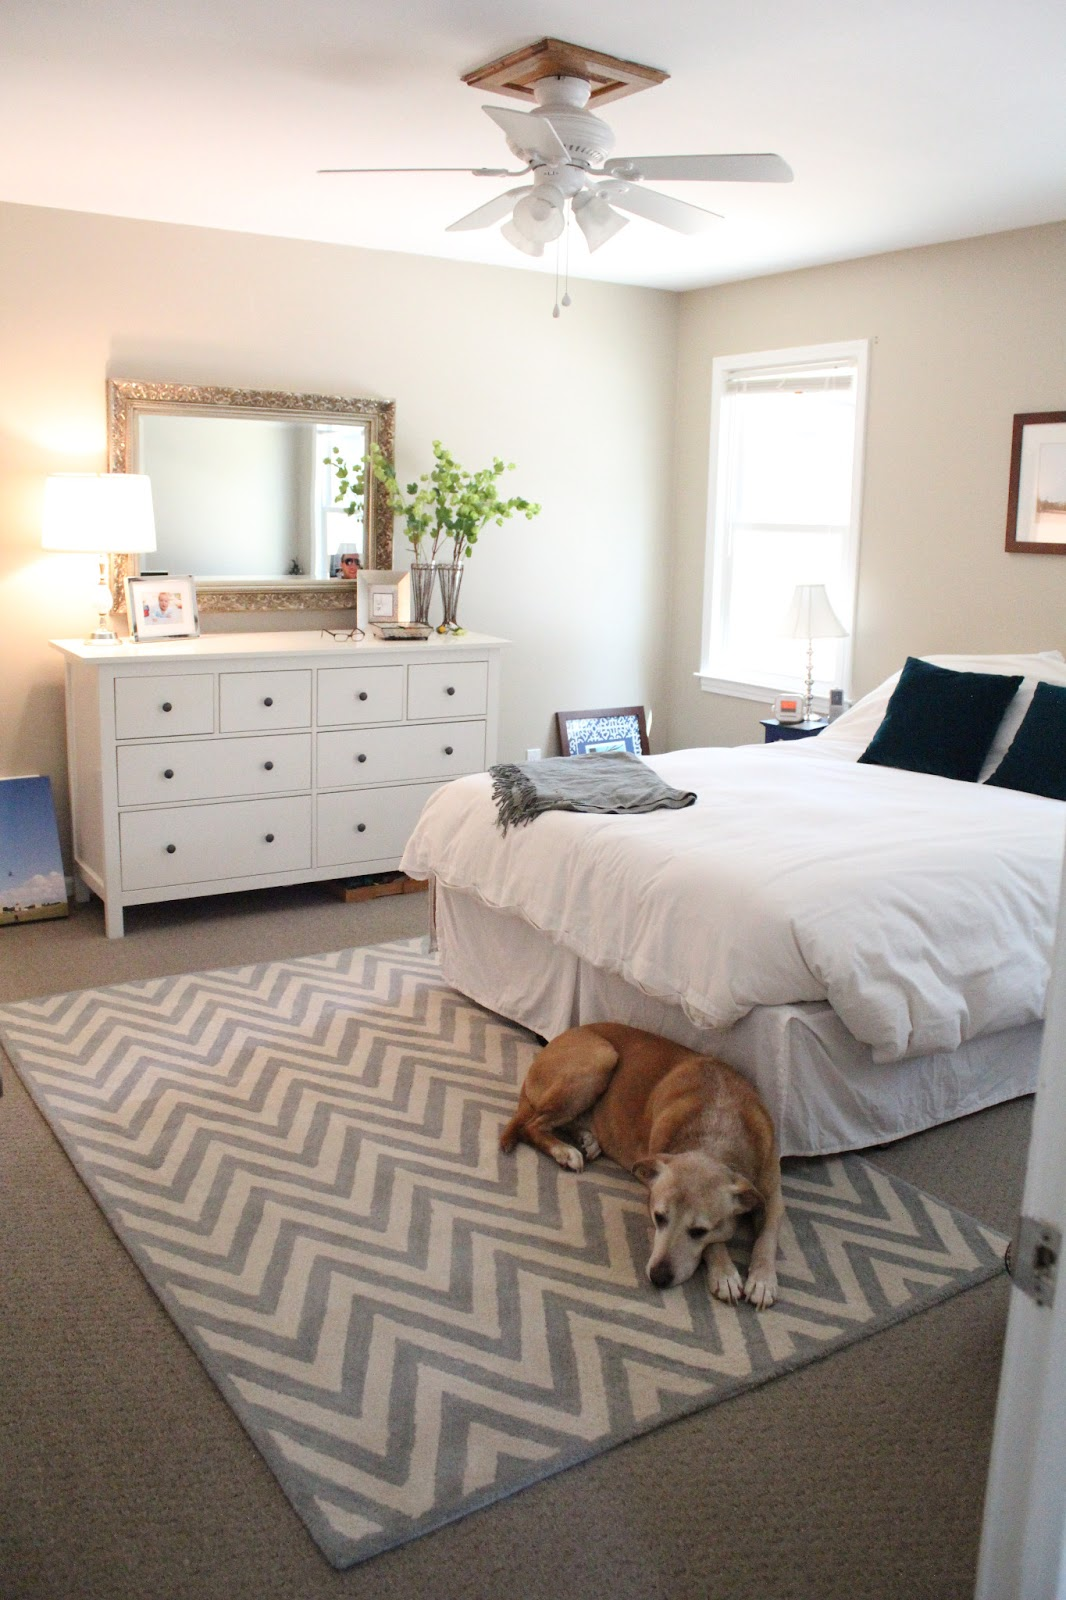 Ten june our rental house a master bedroom tour Ideas to decorate master bedroom dresser